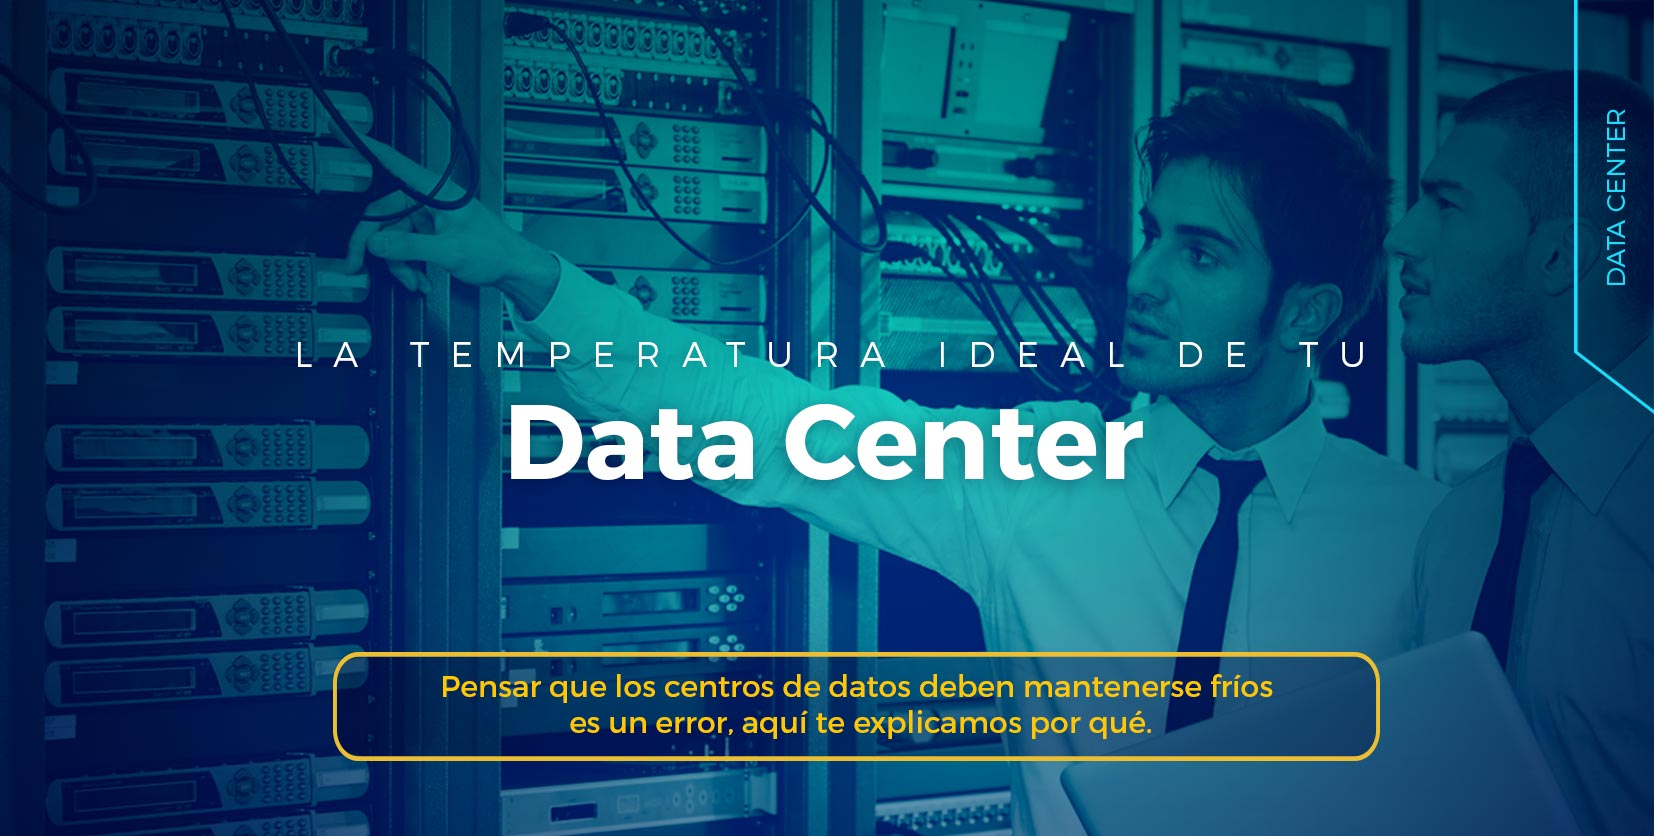 Cuál es la temperatura ideal de tu data center y por qué es importante